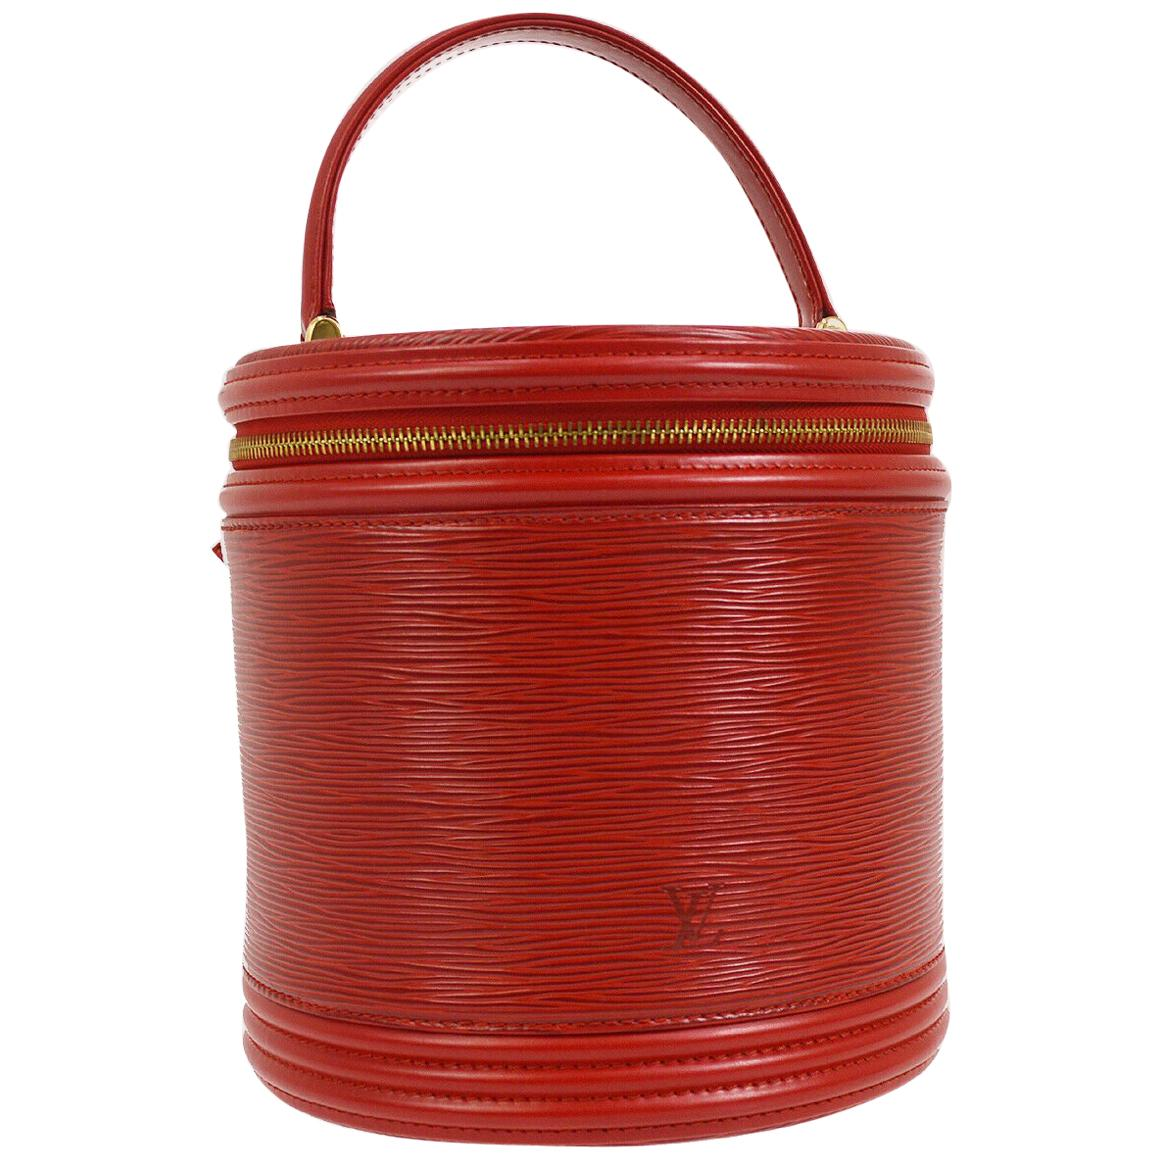 Louis Vuitton Red Leather Top Handle Satchel Travel Jewelry Cosmetic Bag